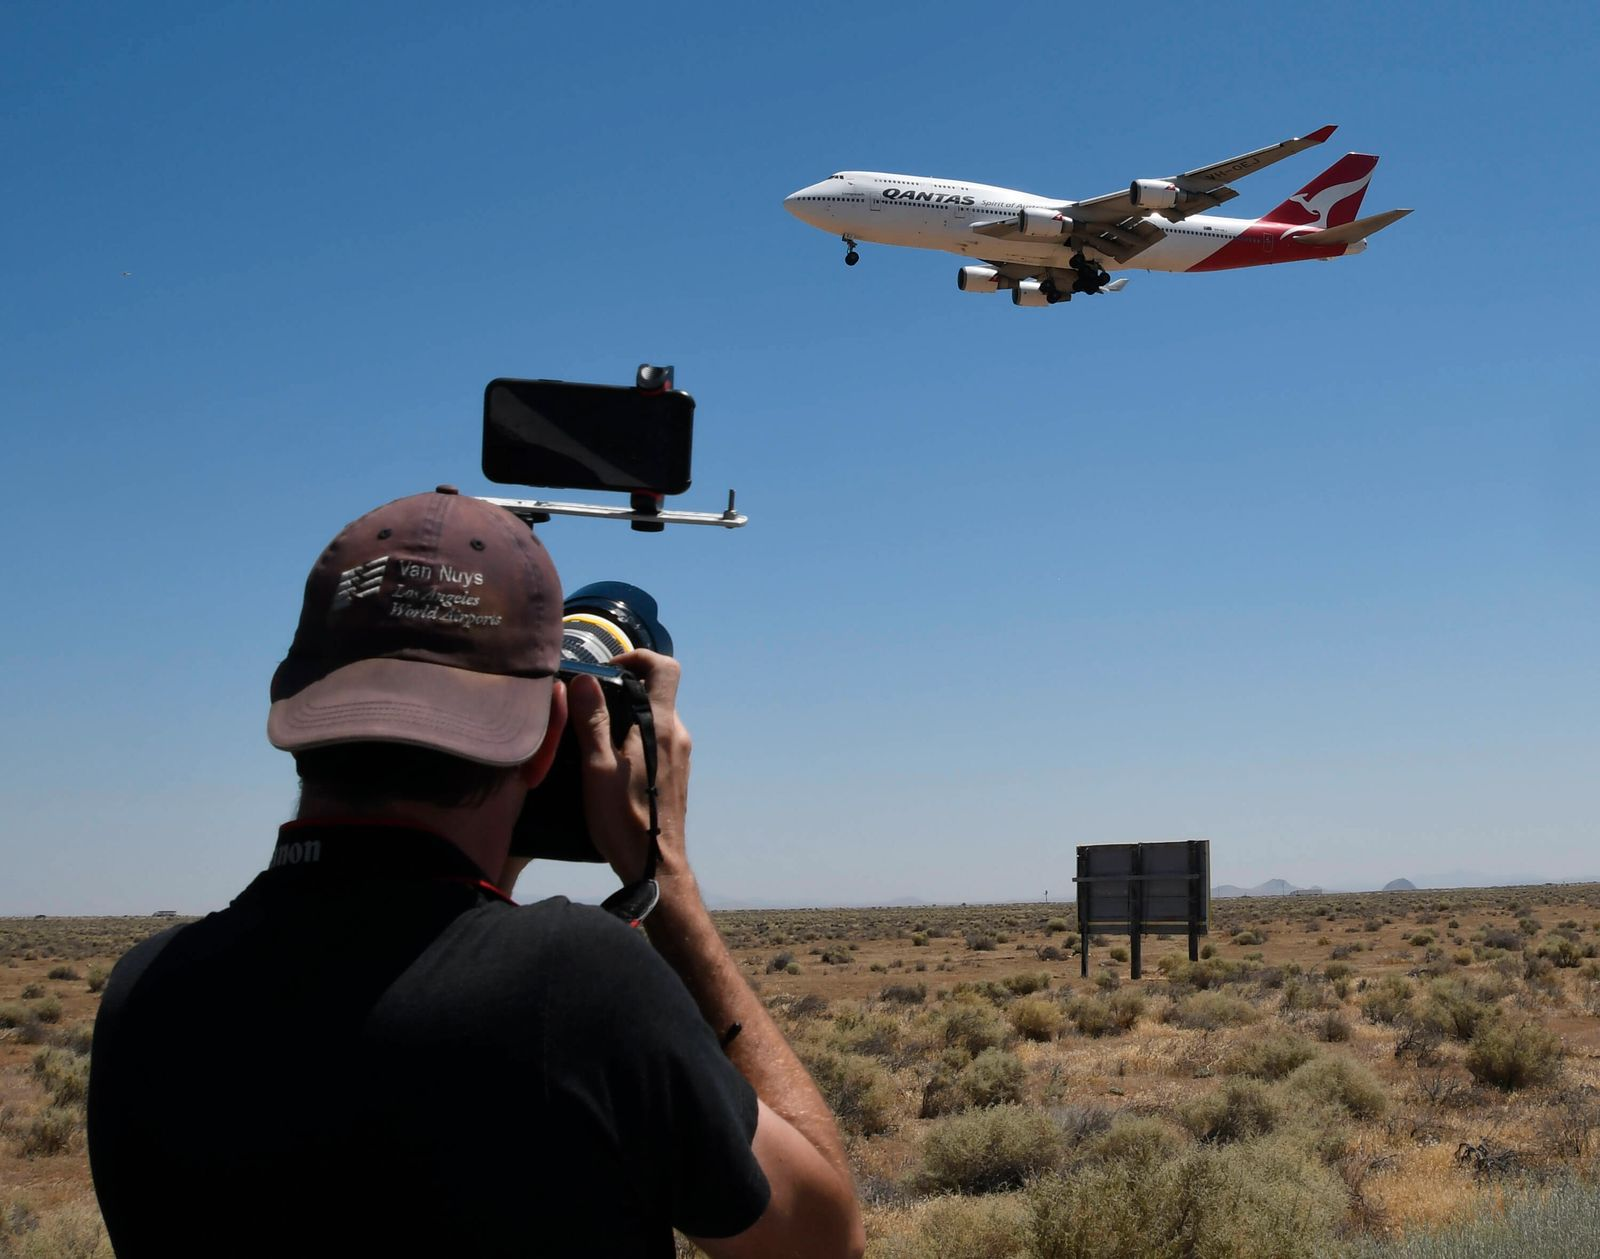 Australia s Qantas Airways has retired its last Boeing 747 as it makes its final flight to Mojave CA/USA airpot Friday,